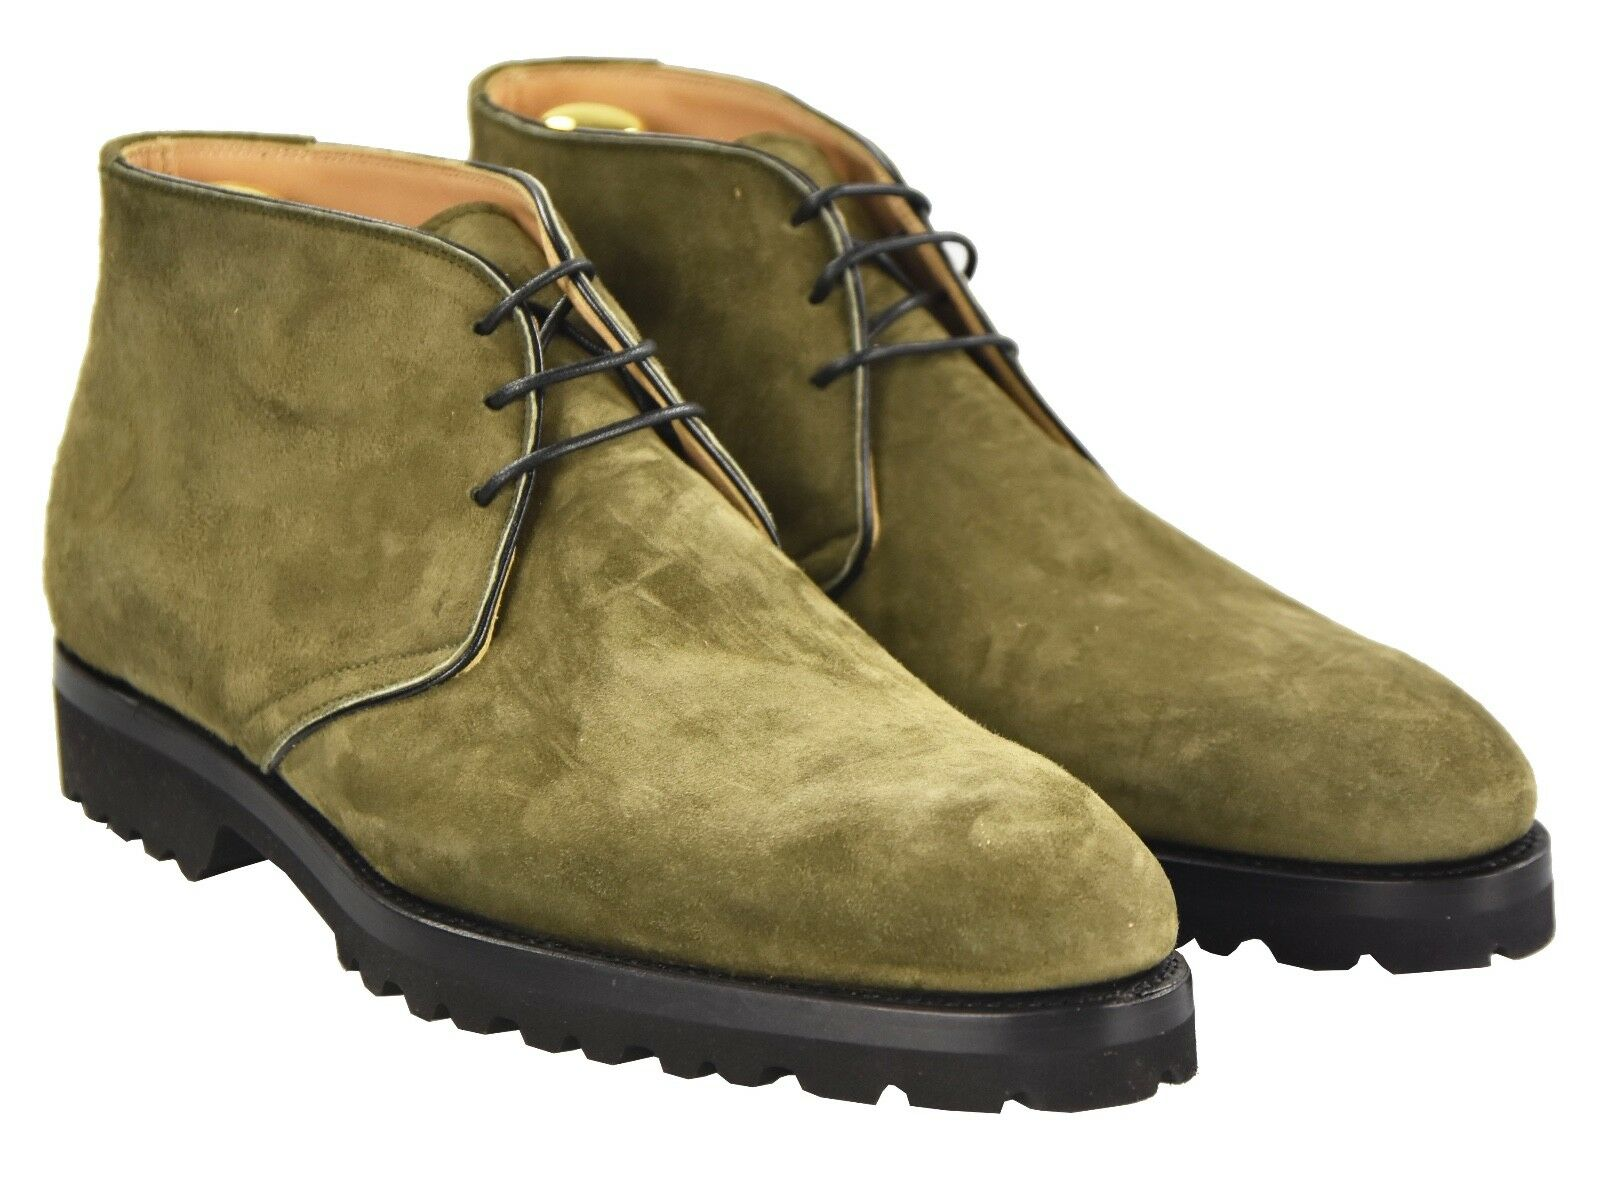 NEW KITON NAPOLI BOOTS SHOES 100% LEATHER SUEDE SIZE 7.5 US 40.5 O2